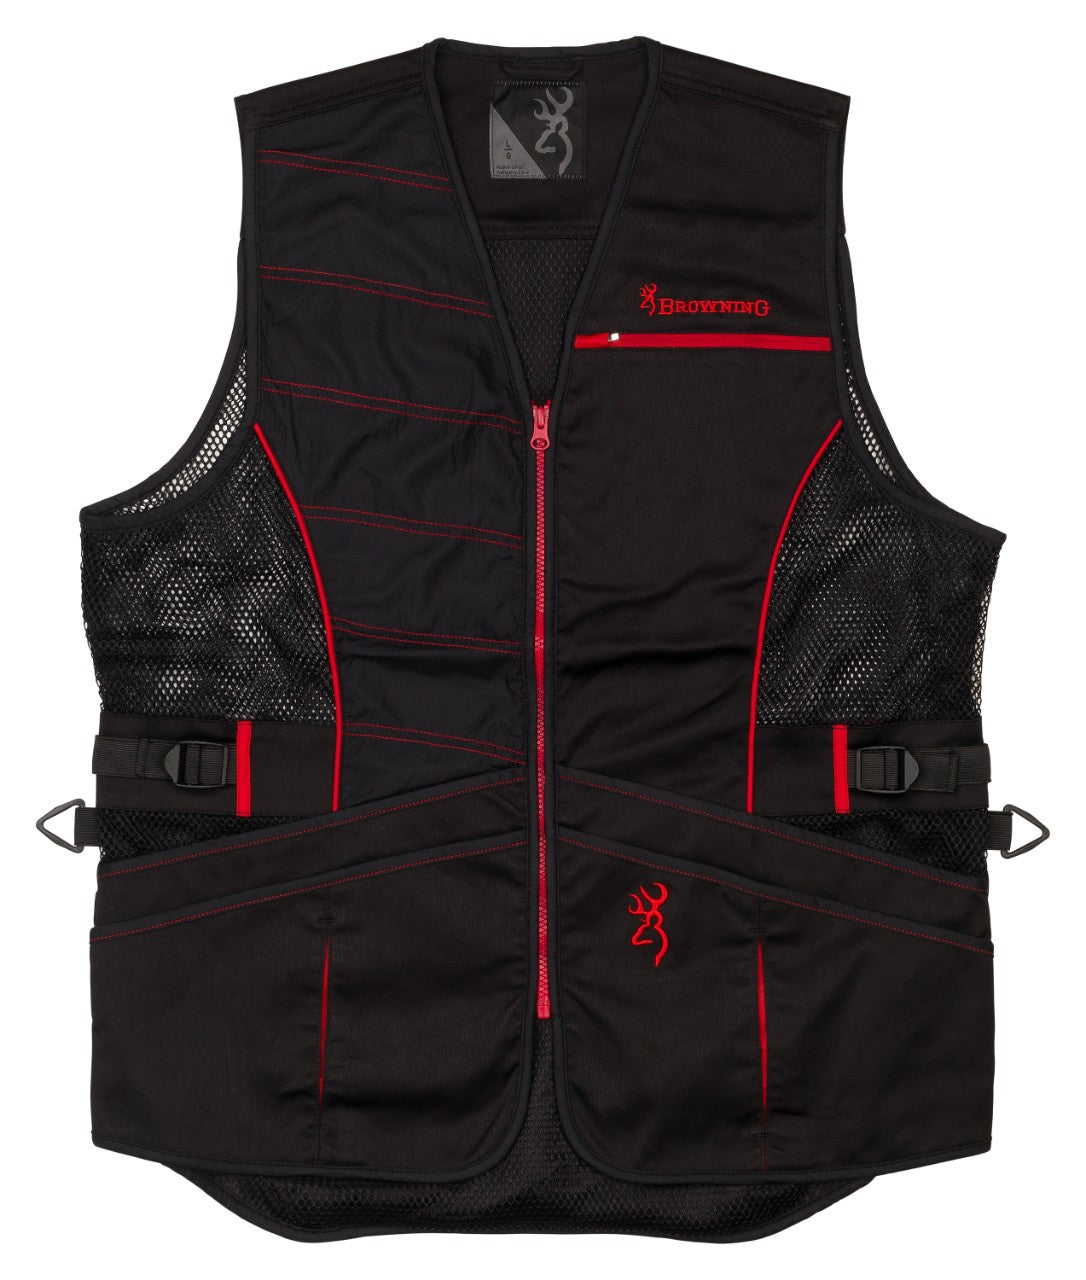 VST ACE SHOOTING BLACK/RED,S